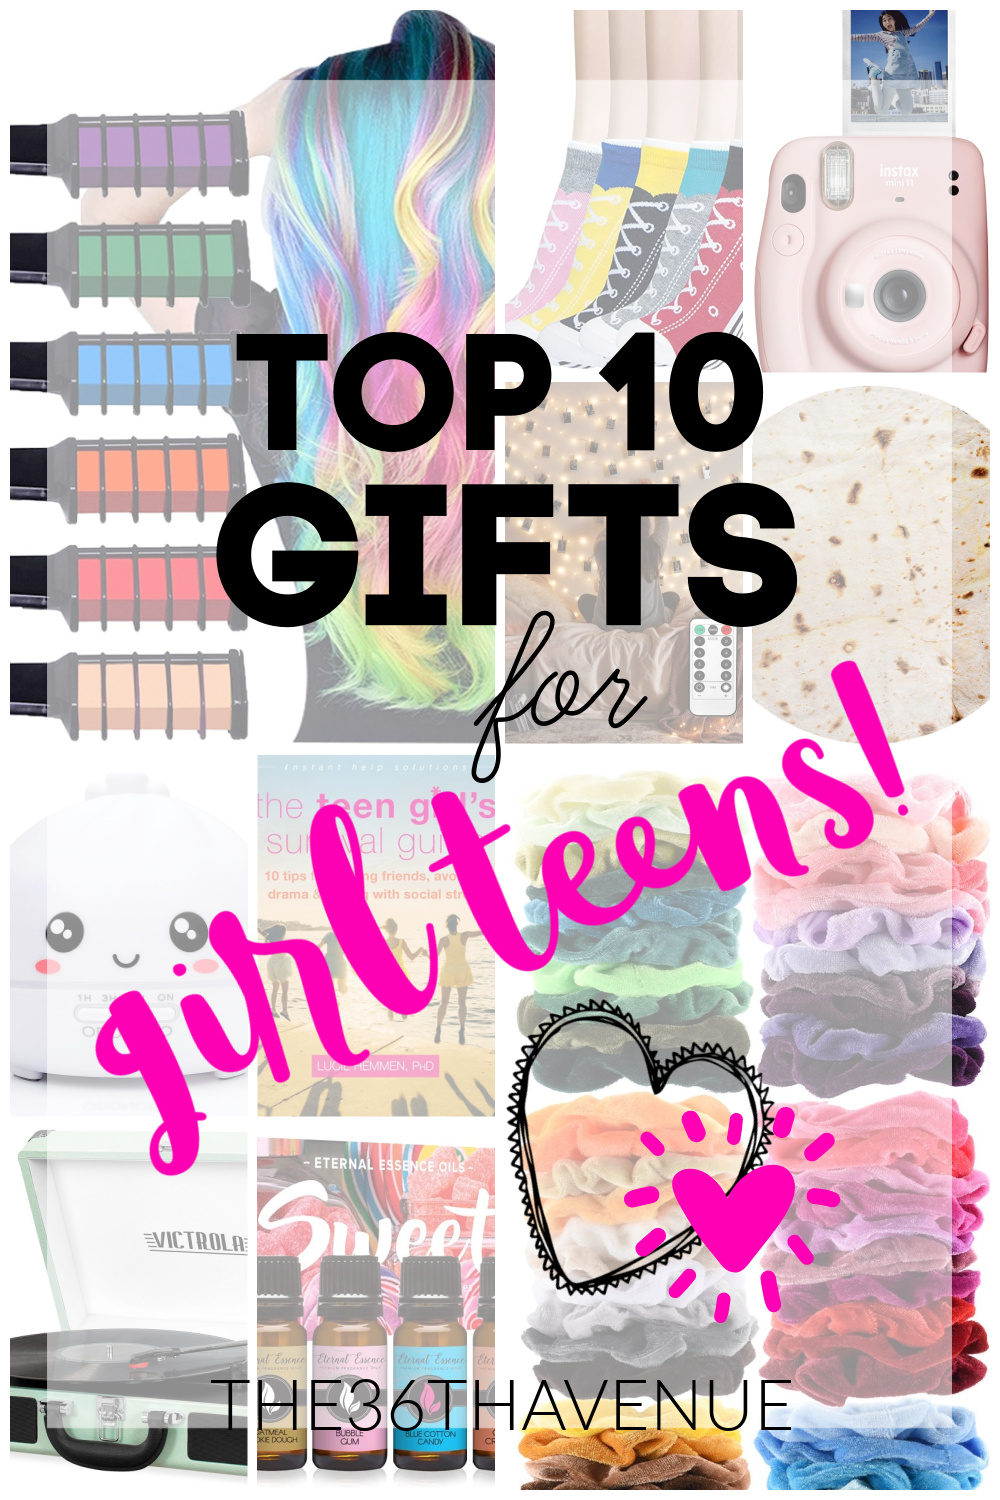 Best gift ideas for teens. Girl gift ideas at the36thavenue.com